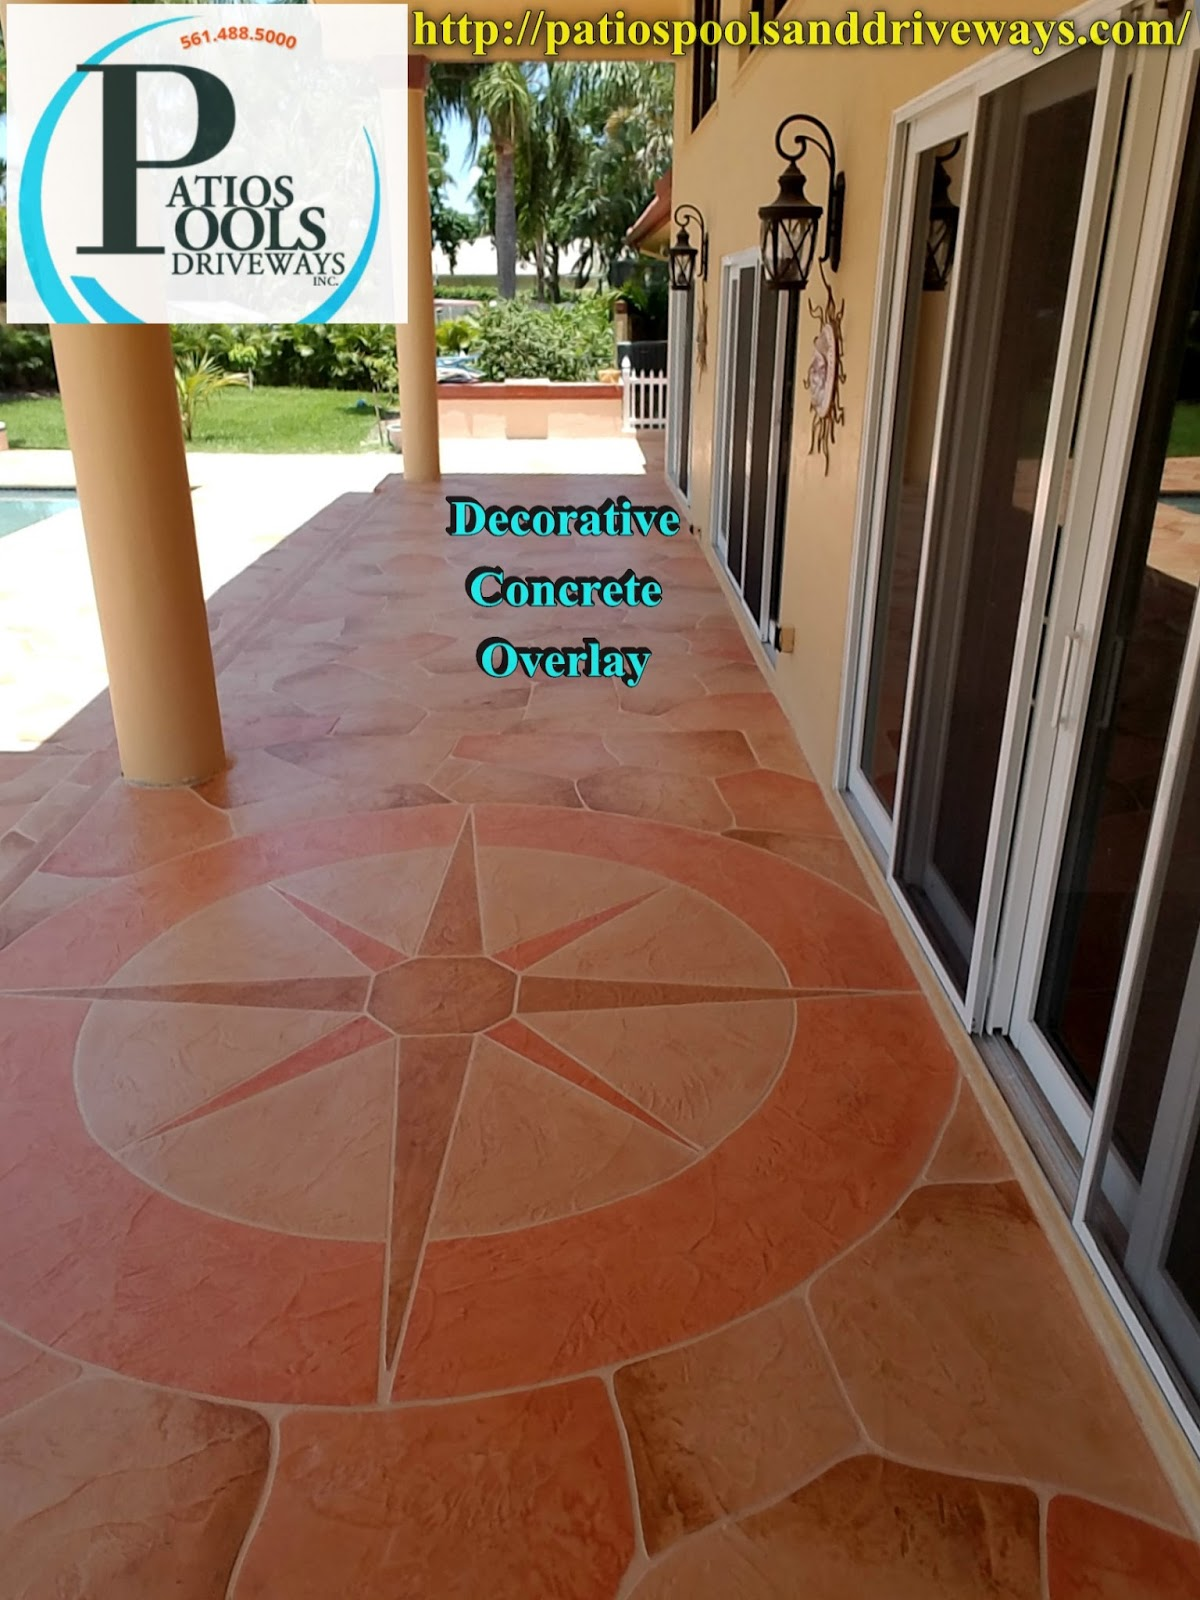 decorative concrete overlay. Decorative concrete overlay  residential pool deck remodel Concrete The many faces for your driveway patio or